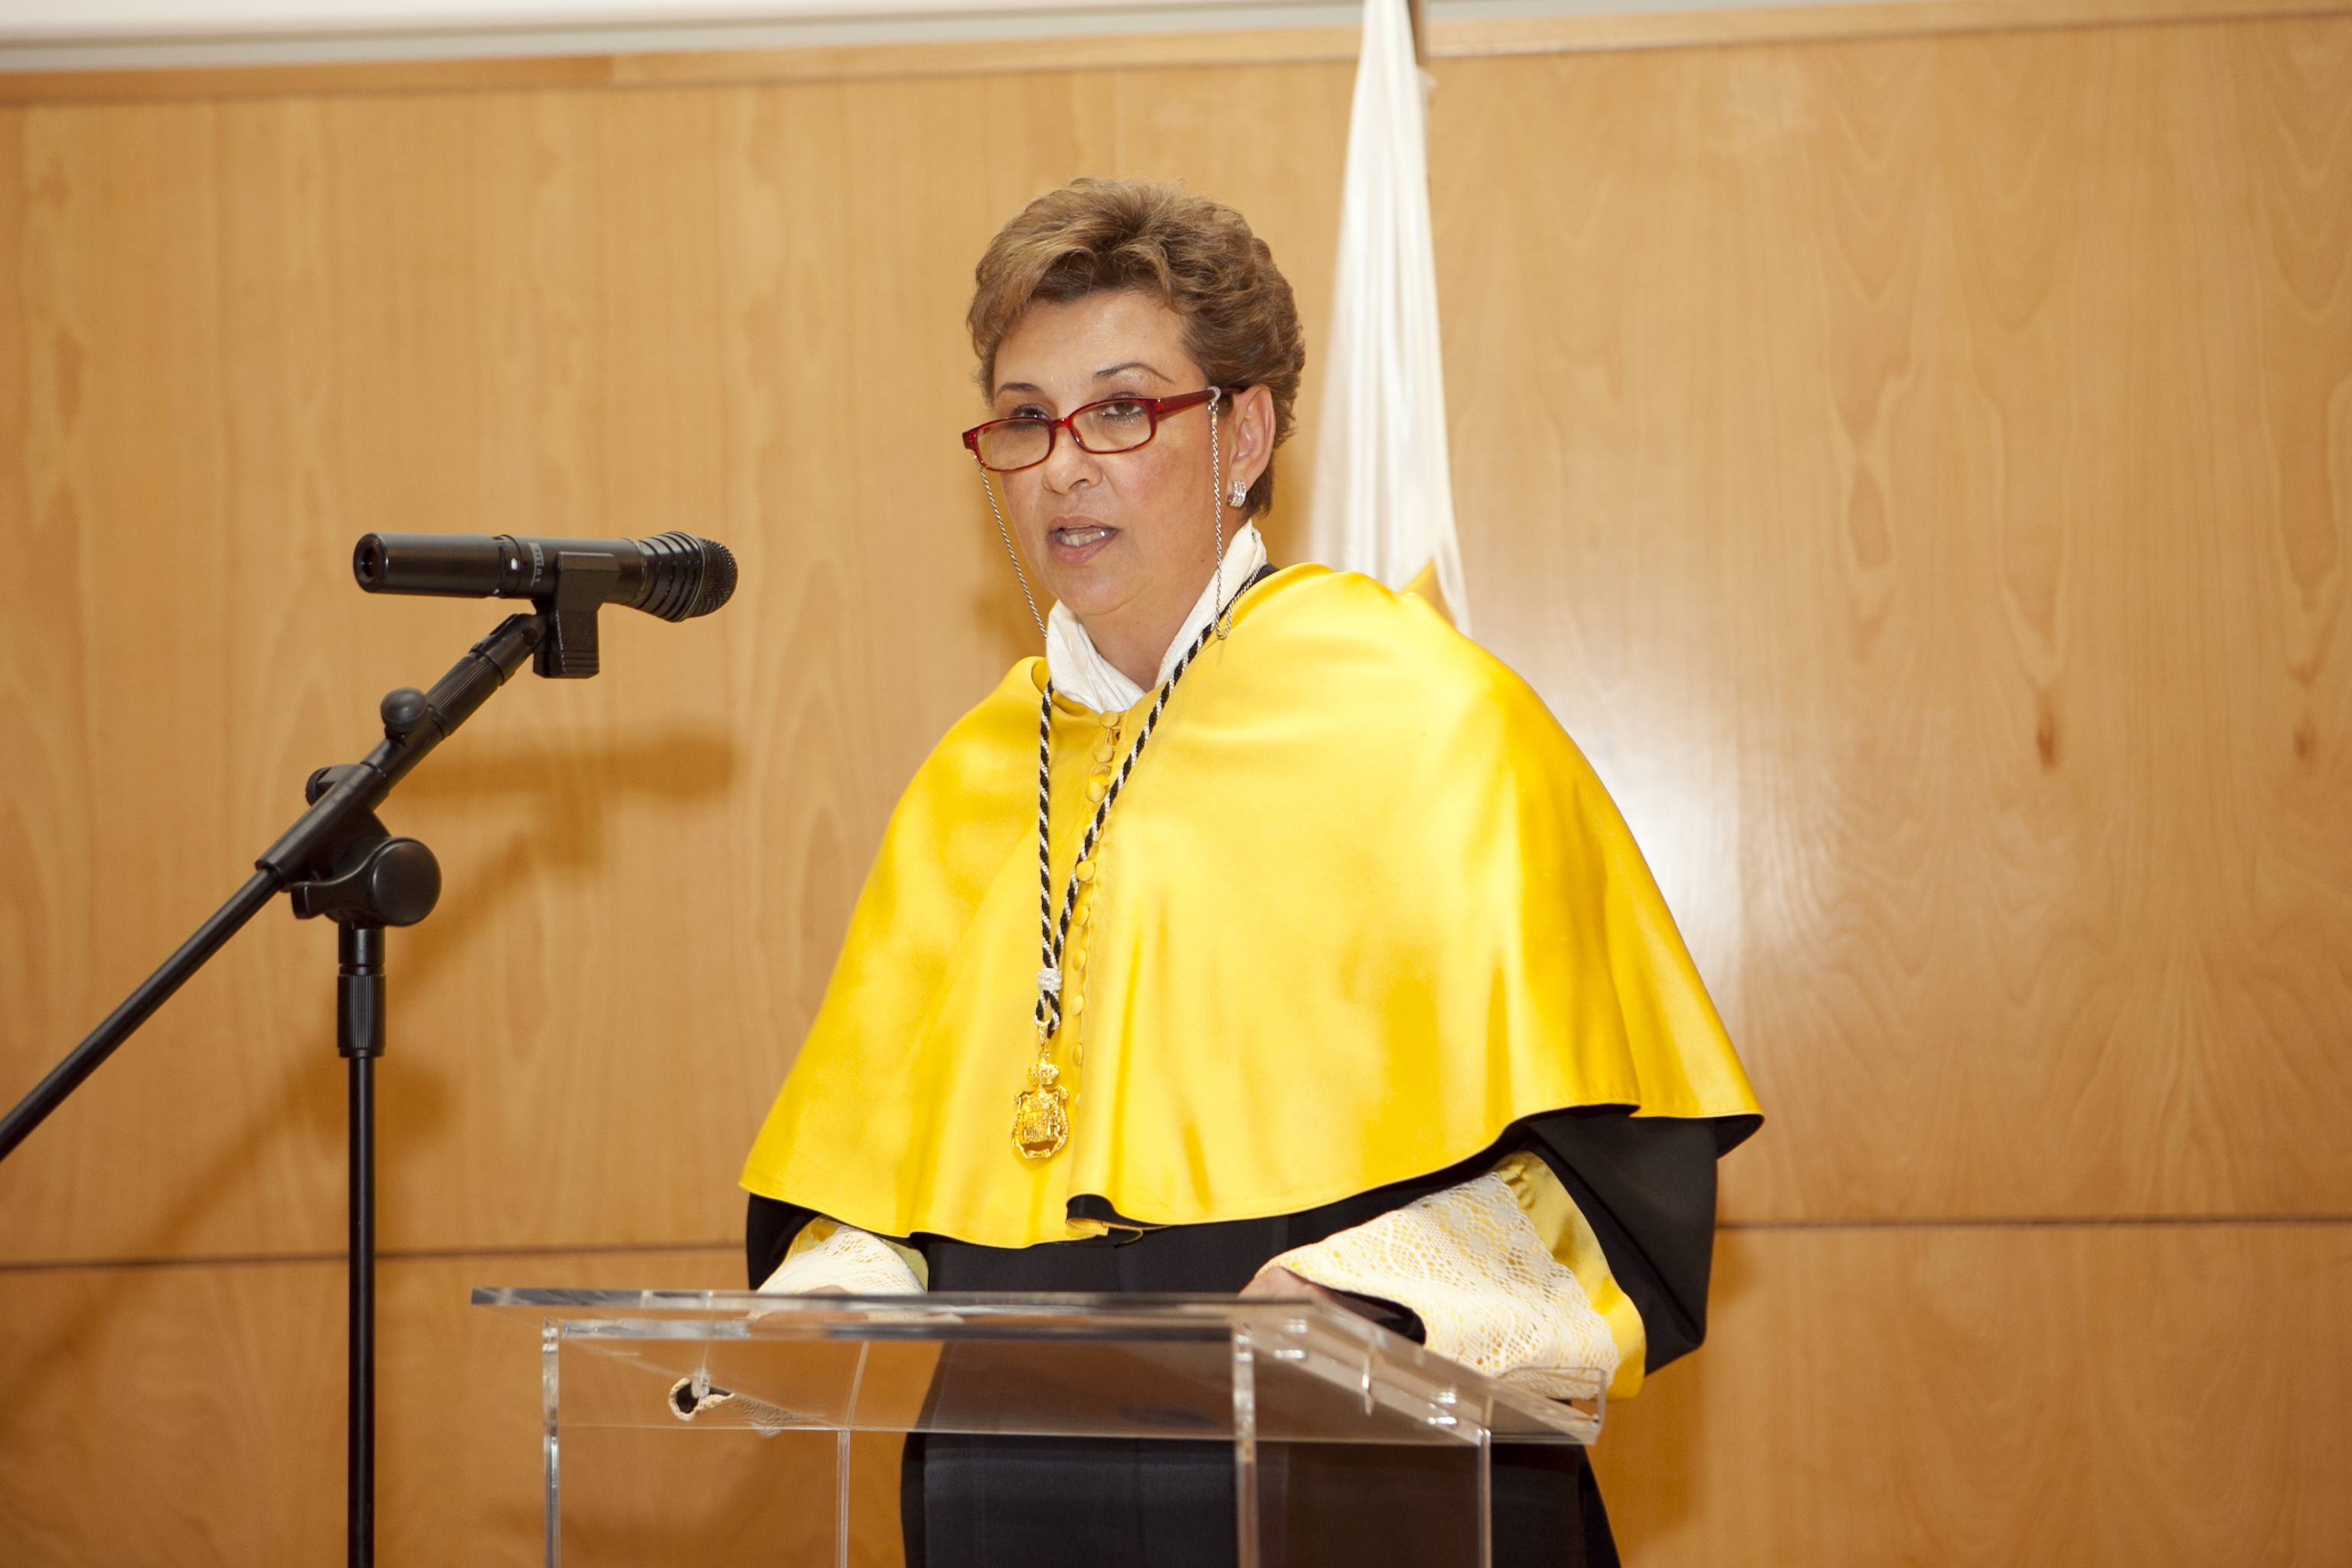 doctor-honoris-causa-luis-gamir_mg_1073.jpg